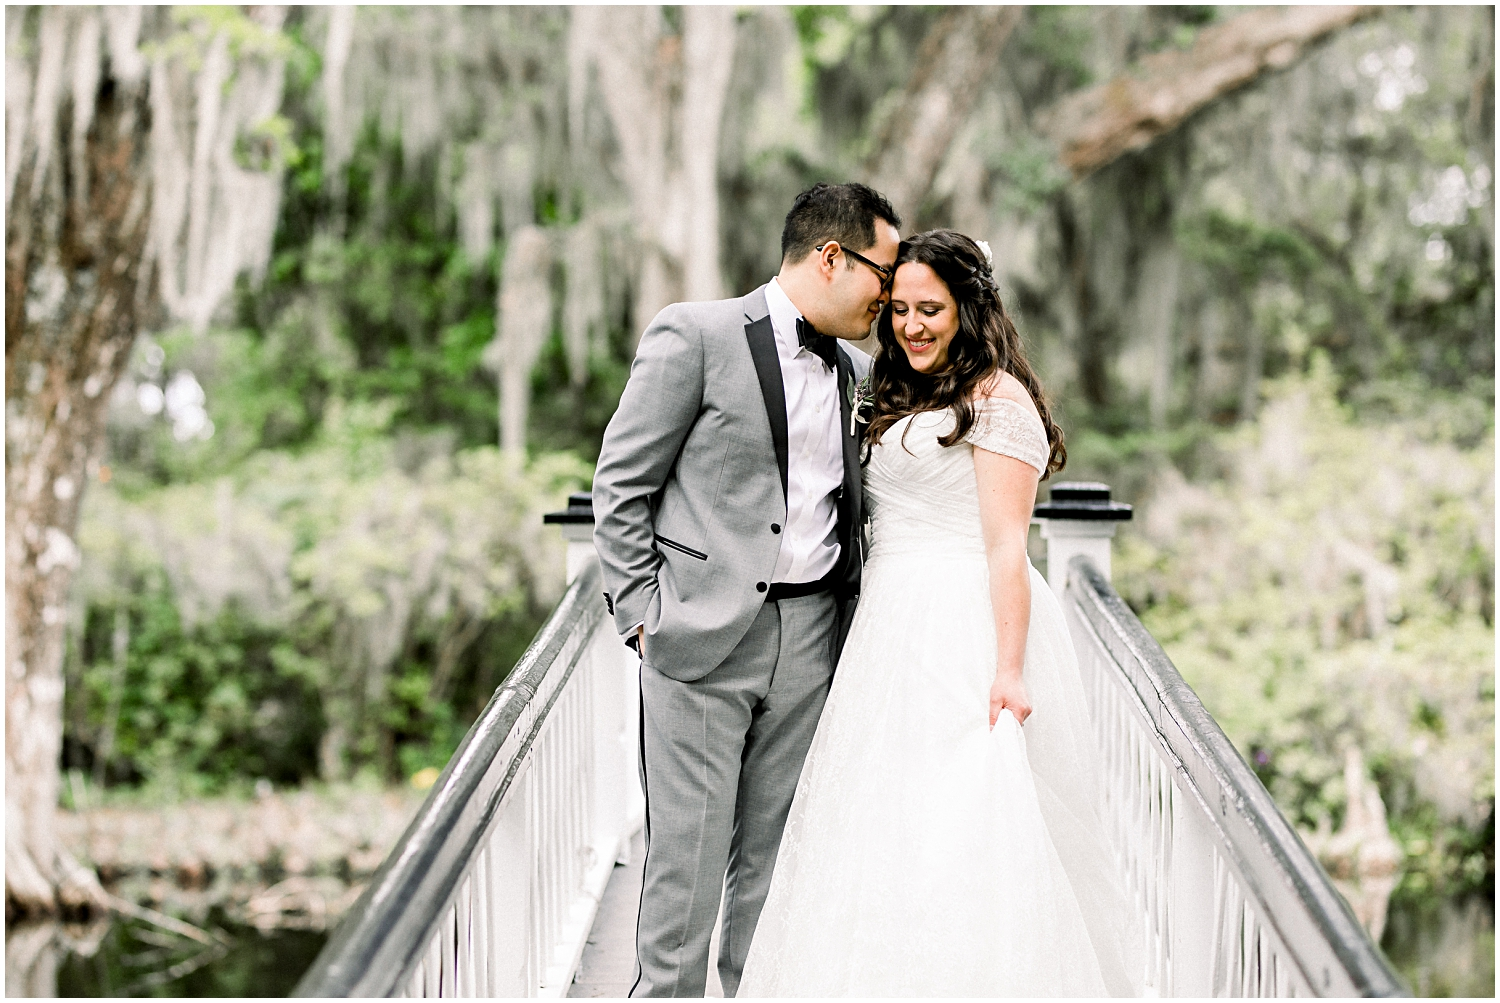 Magnolia Gardens Wedding, Charleston, SC_Erin L. Taylor Photography_0031.jpg